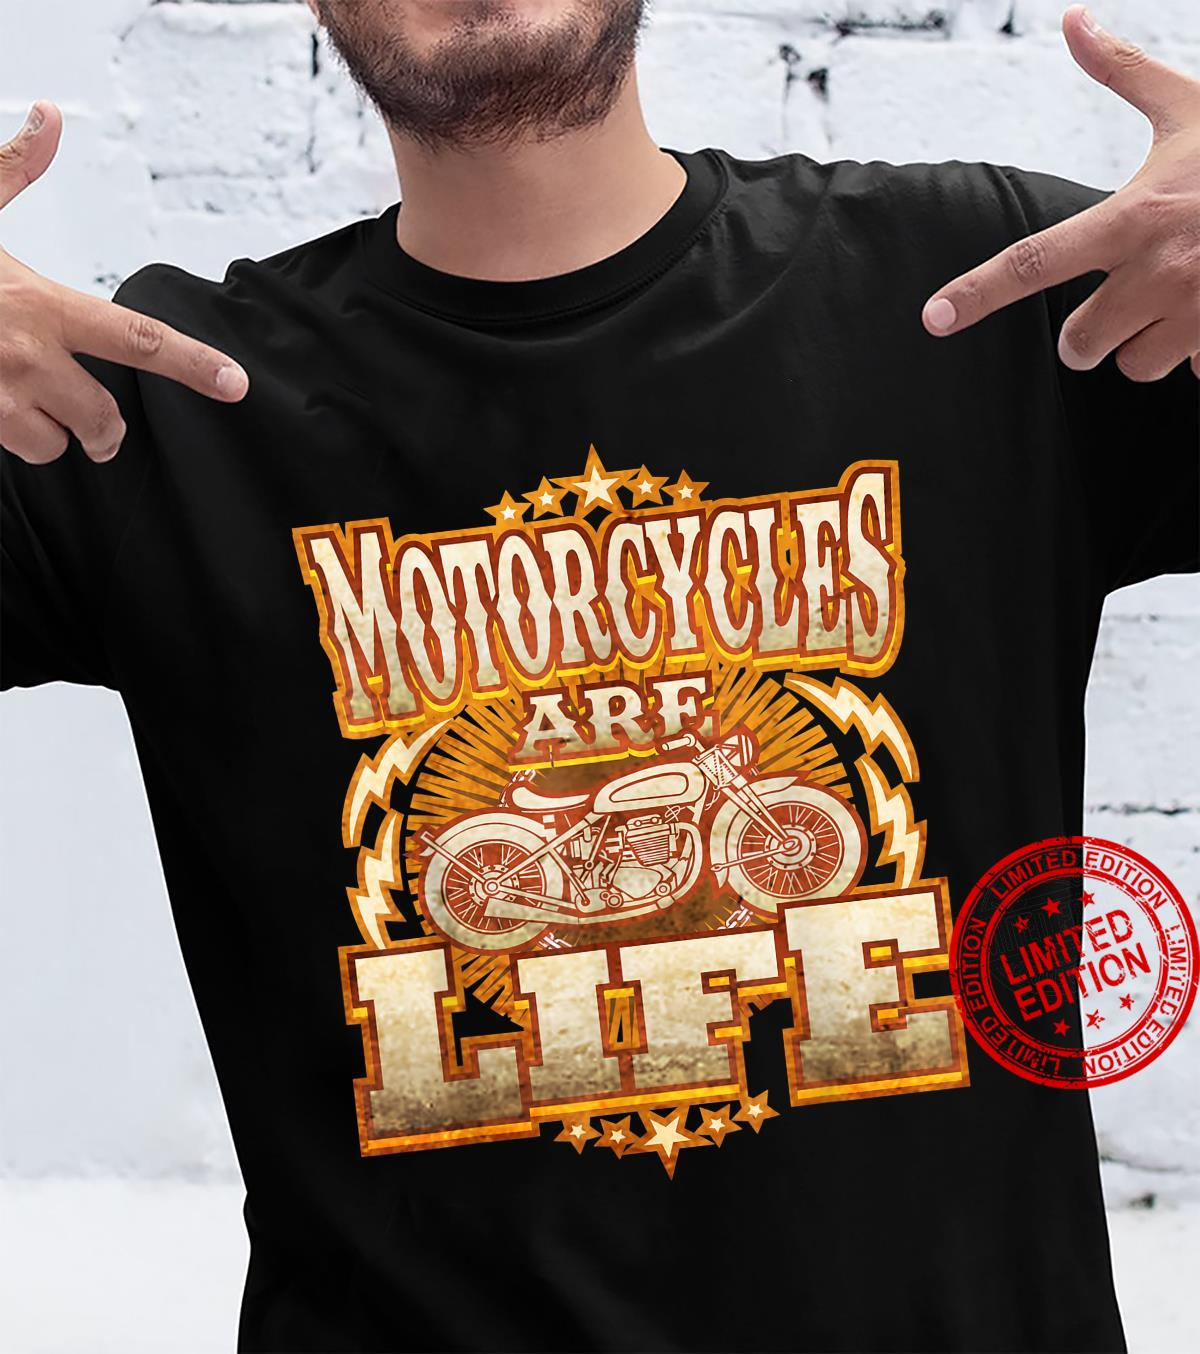 Motorcycles Are Life Shirt